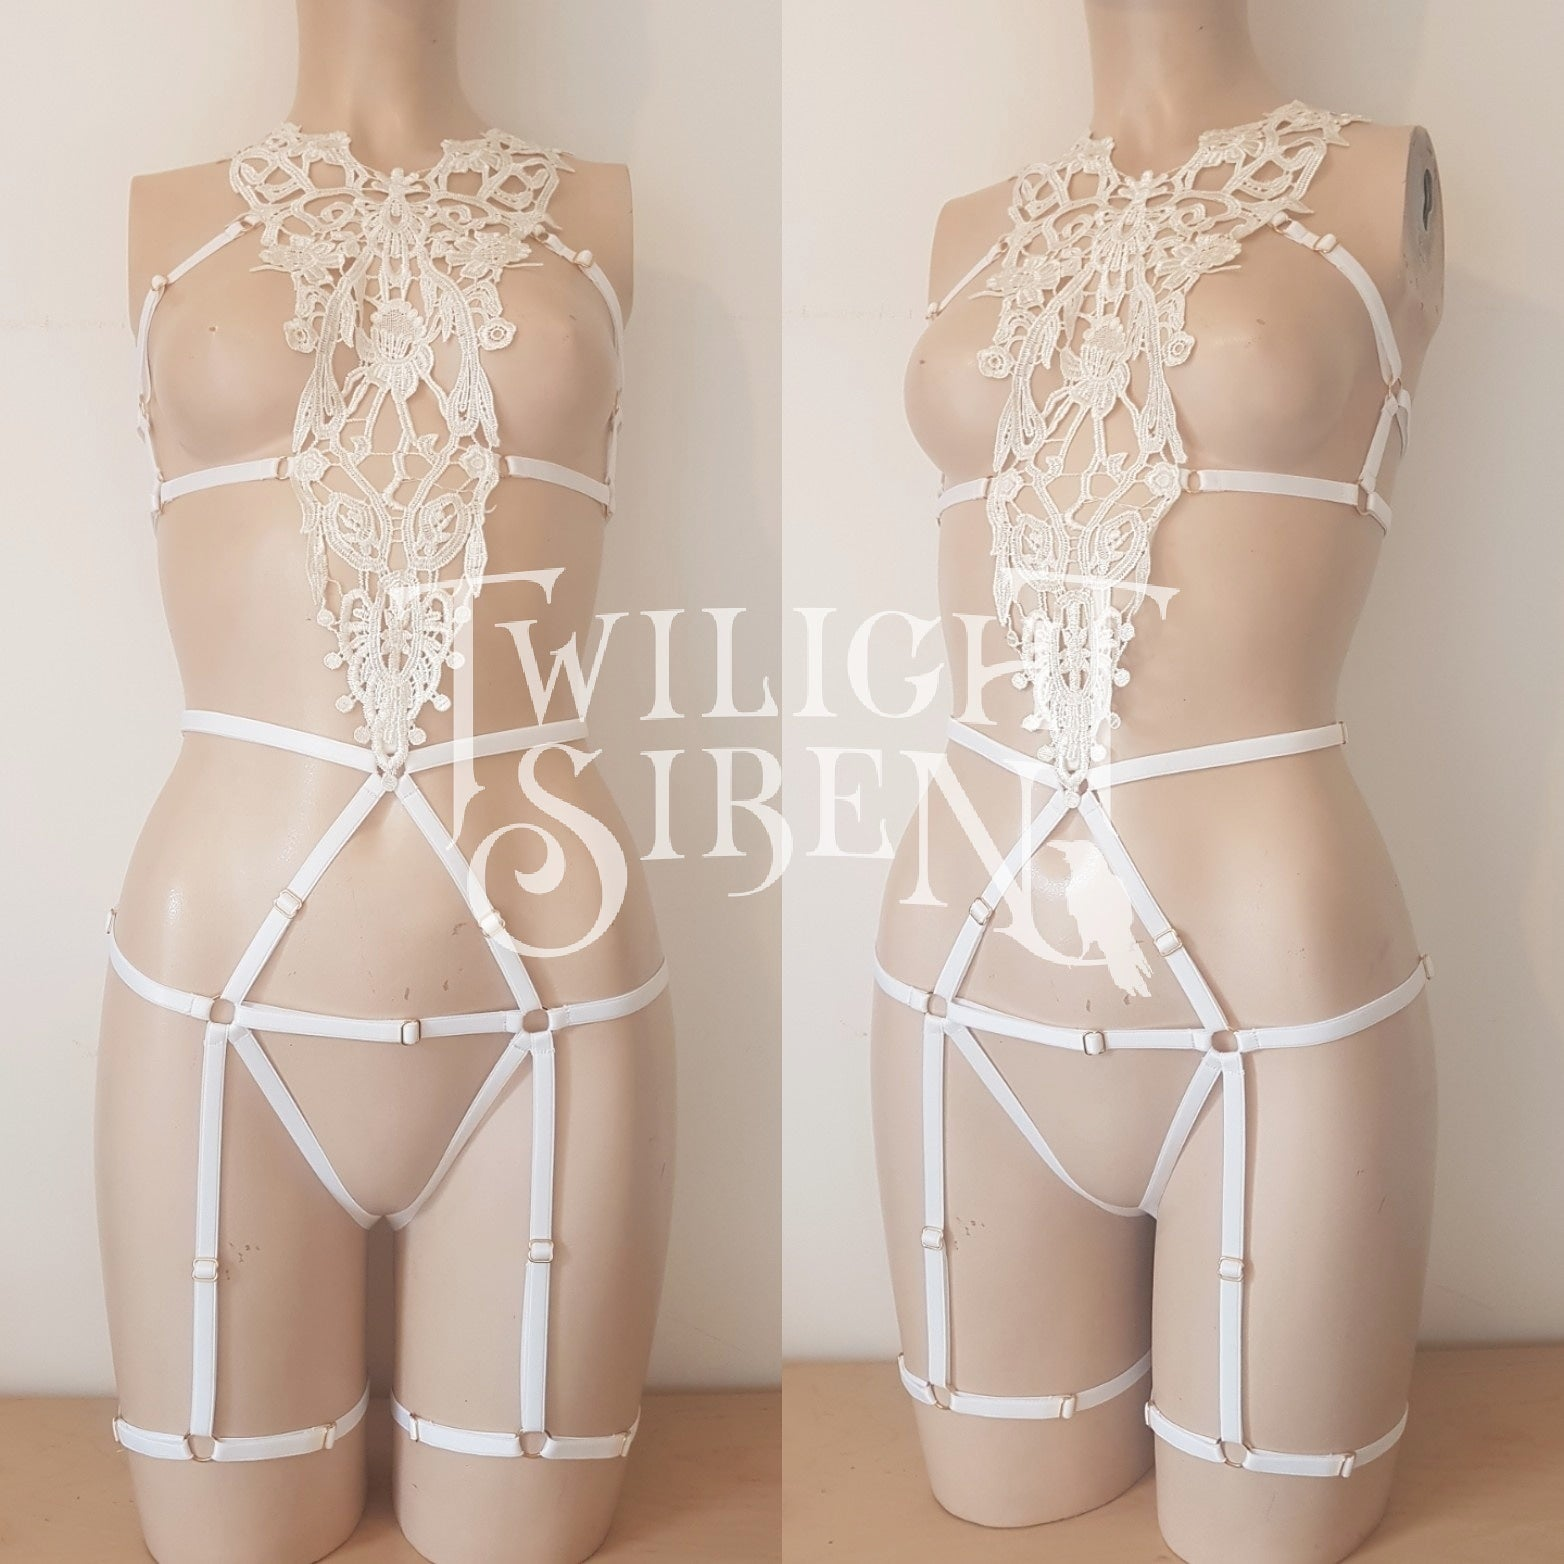 9653f82968f ... MIMI - lace body harness playsuit ouvert brief off white lingerie- Twilight  Siren ...